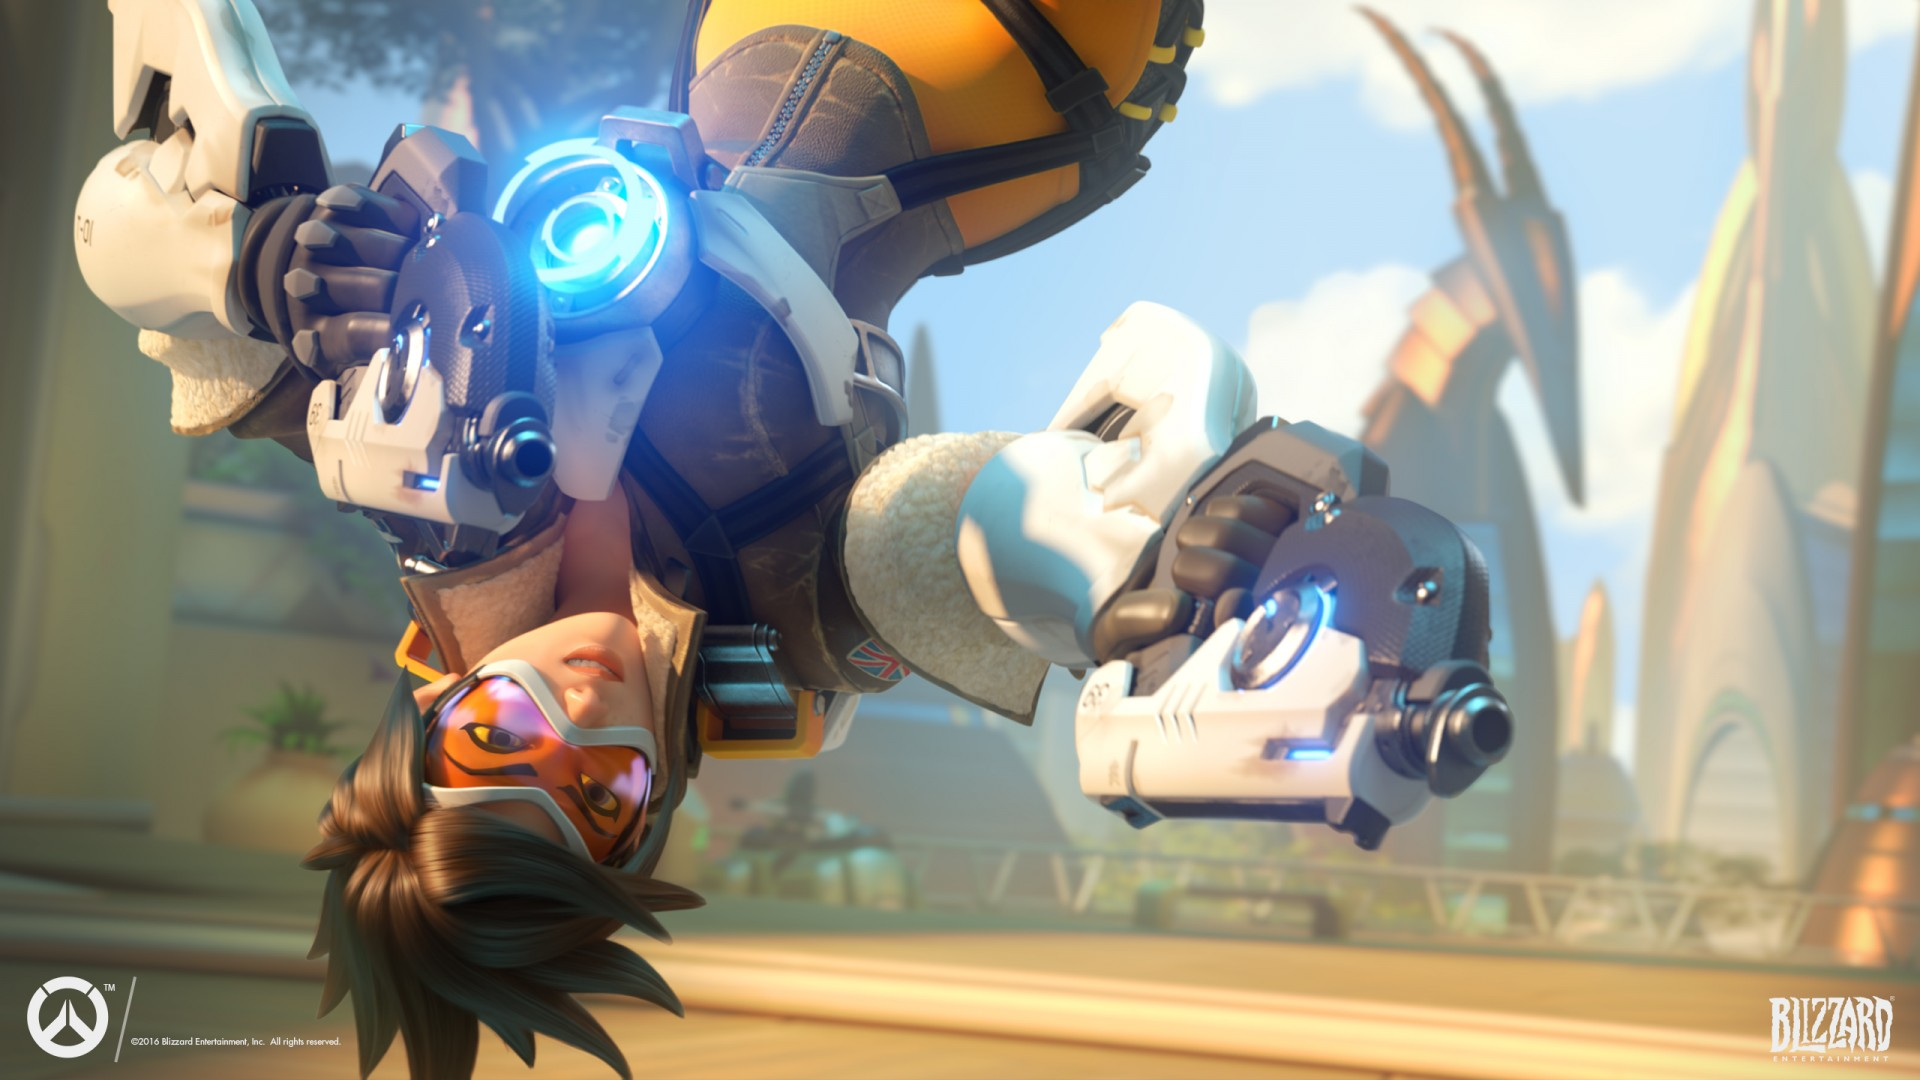 Tracer Overwatch Action Free Hd Image Mewallpaper